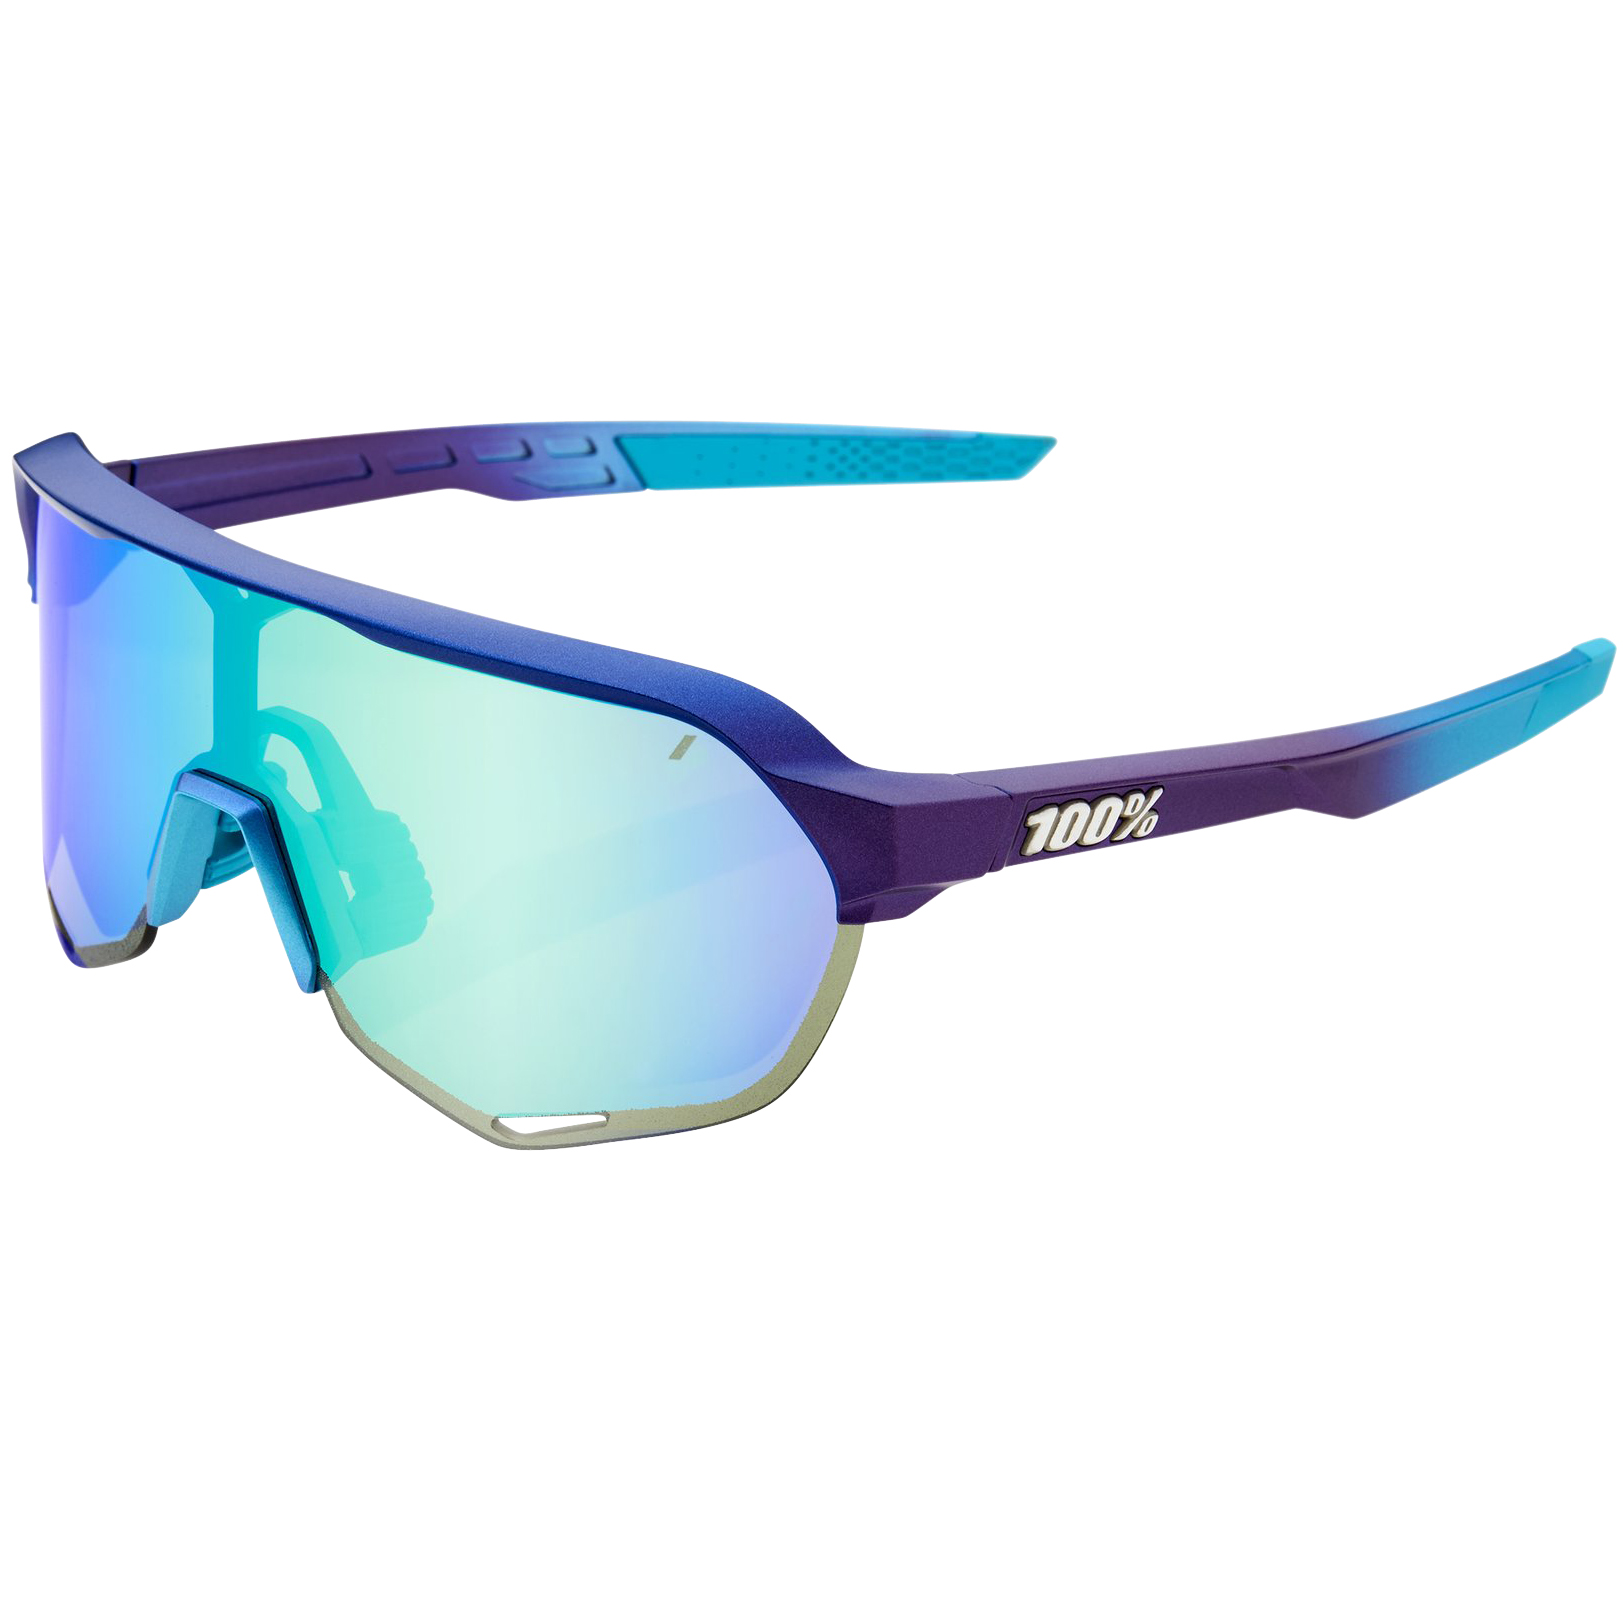 100% S2 Multilayer Mirror Lens Glasses - Matte Metallic Into the Fade/Blue Topaz + Clear